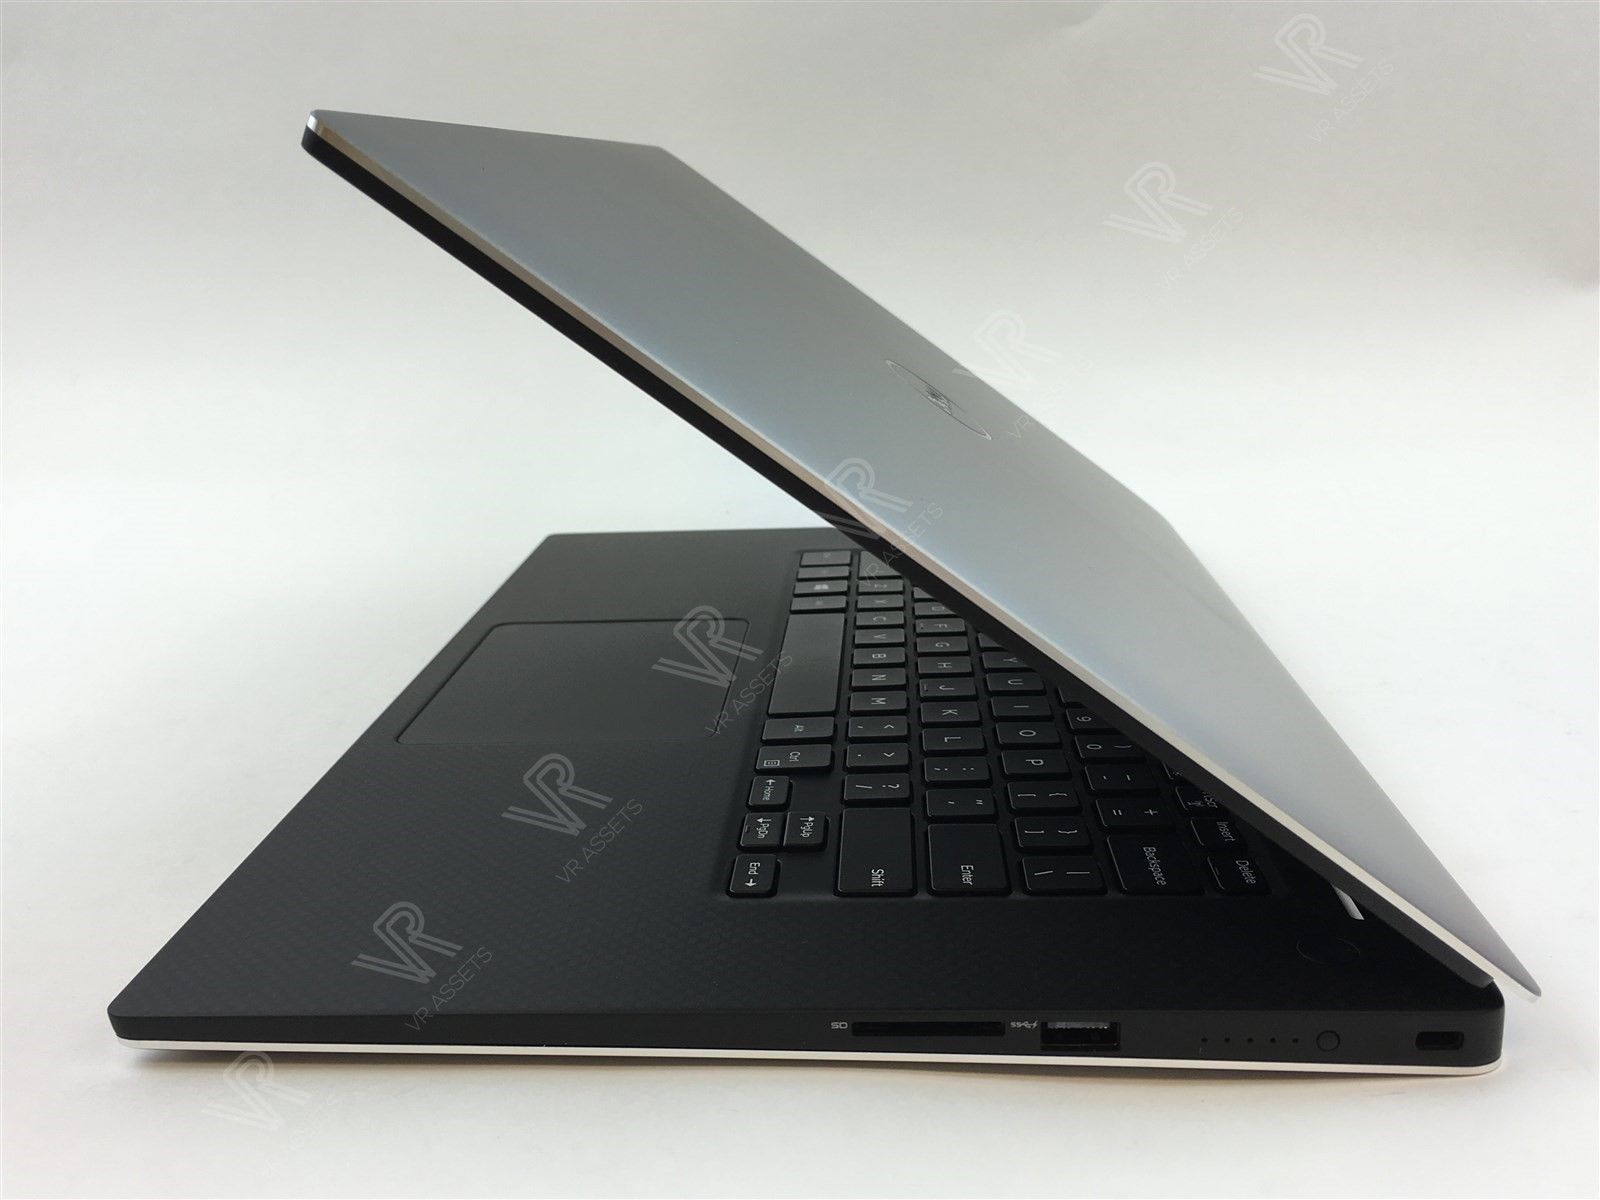 "Dell XPS 15 9560 15.6"" I5-7300HQ 8Gb 1Tb FHD Wifi Webcam Windows 10 Pro Laptop"